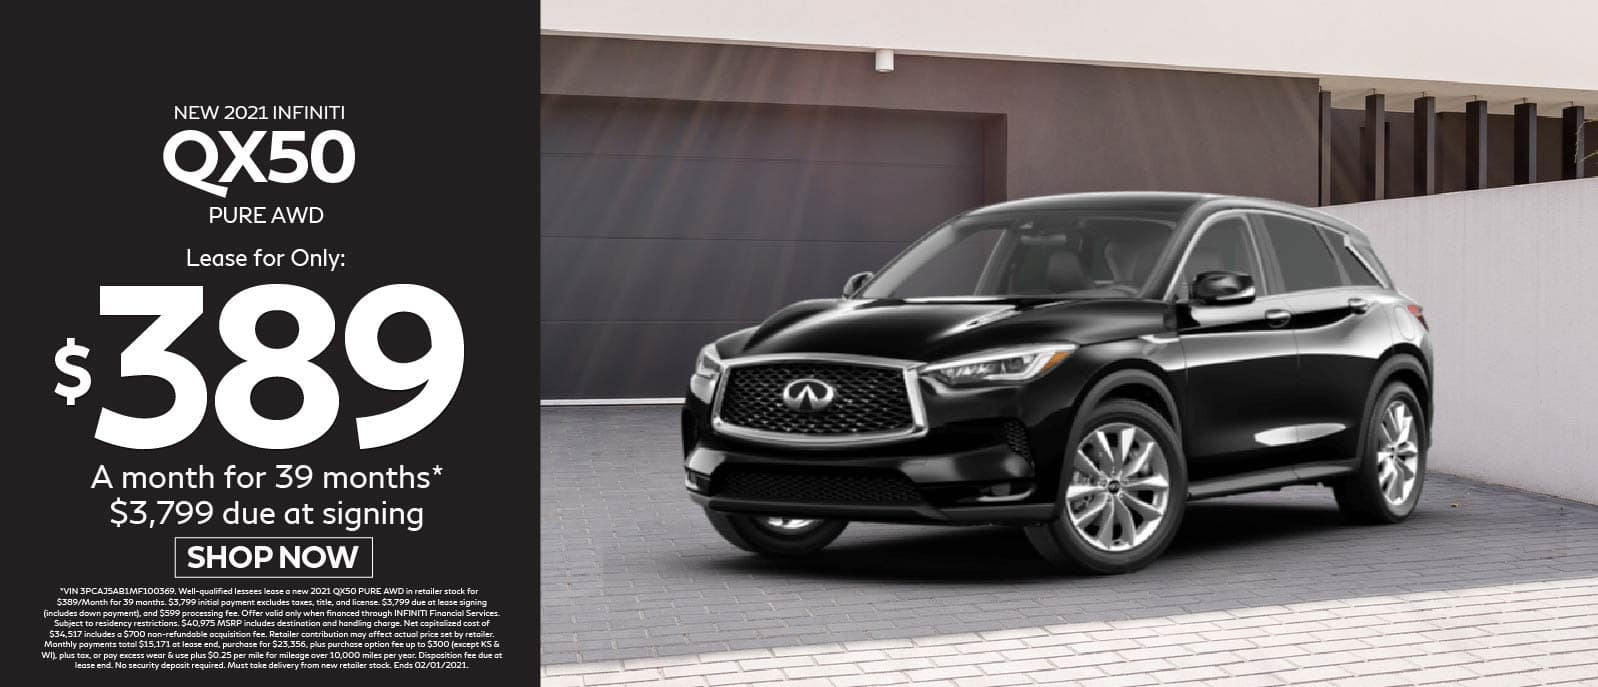 New 2021 INFINITI QX50 - Lease for only $389 per month - Shop Now